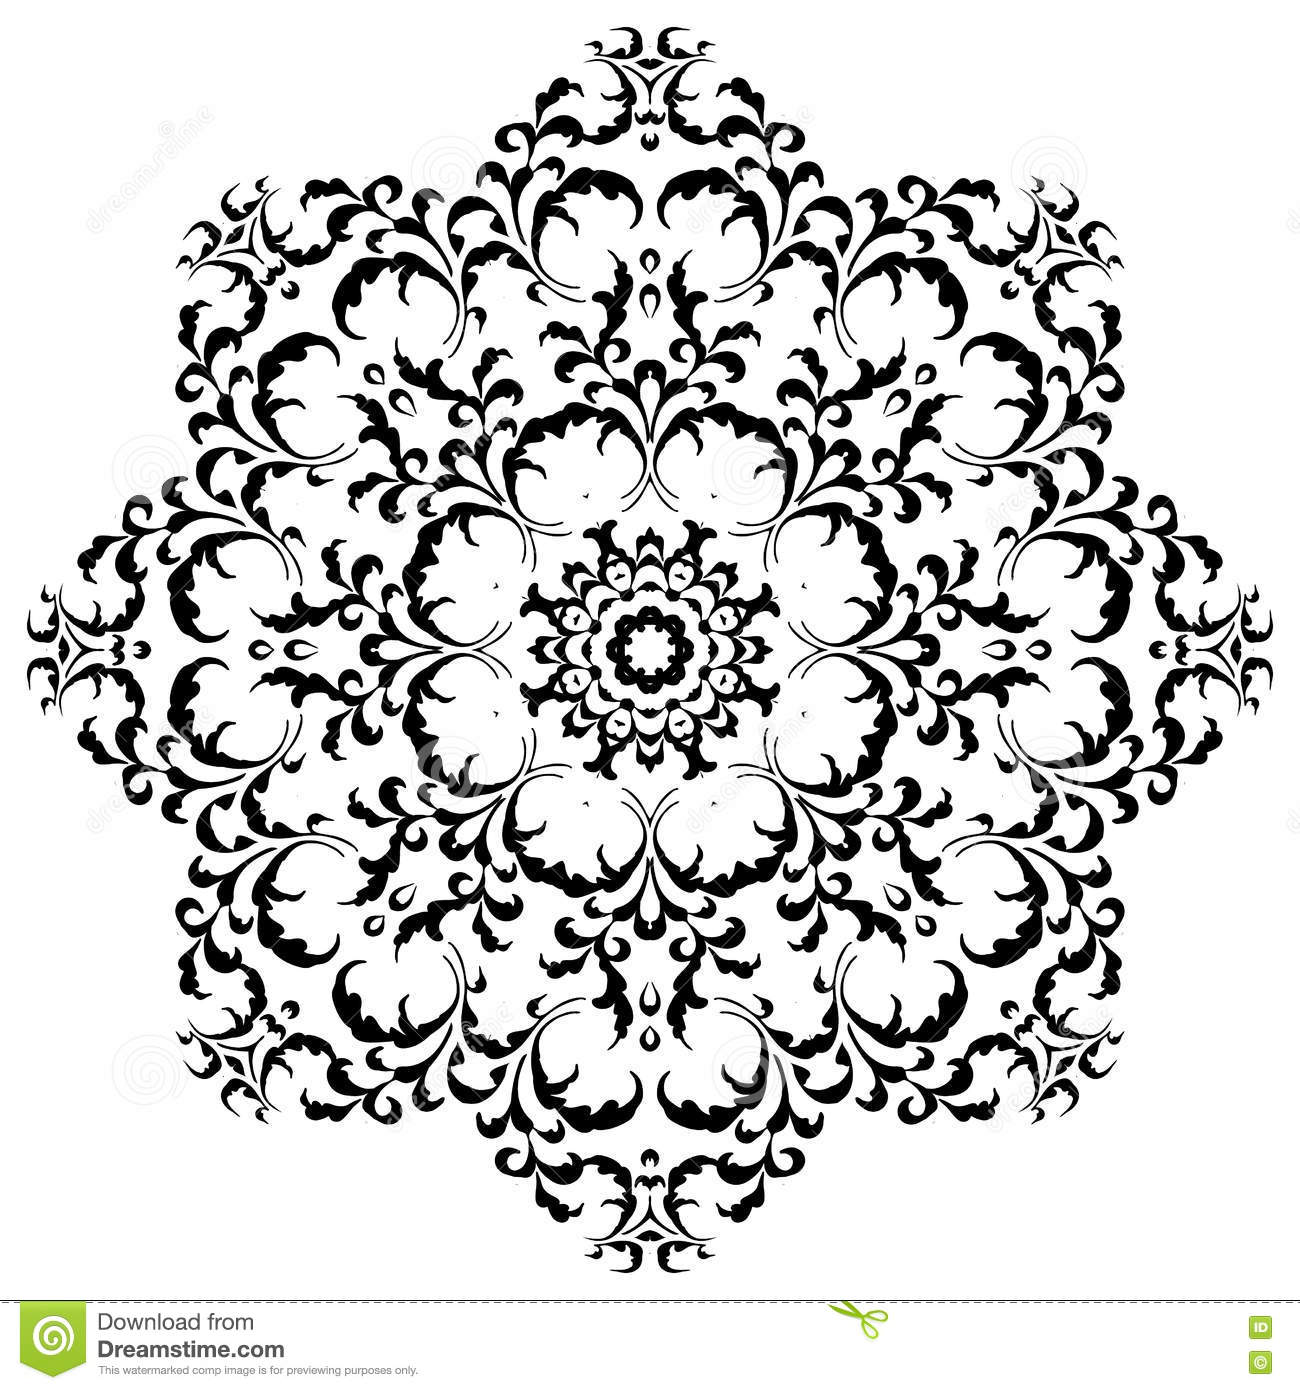 19b8bd169 Circular floral ornament in black and white. Mandala, Yantra brown. Vintage  vector banner frame card for text, invitations for wedding, birthday  celebration ...